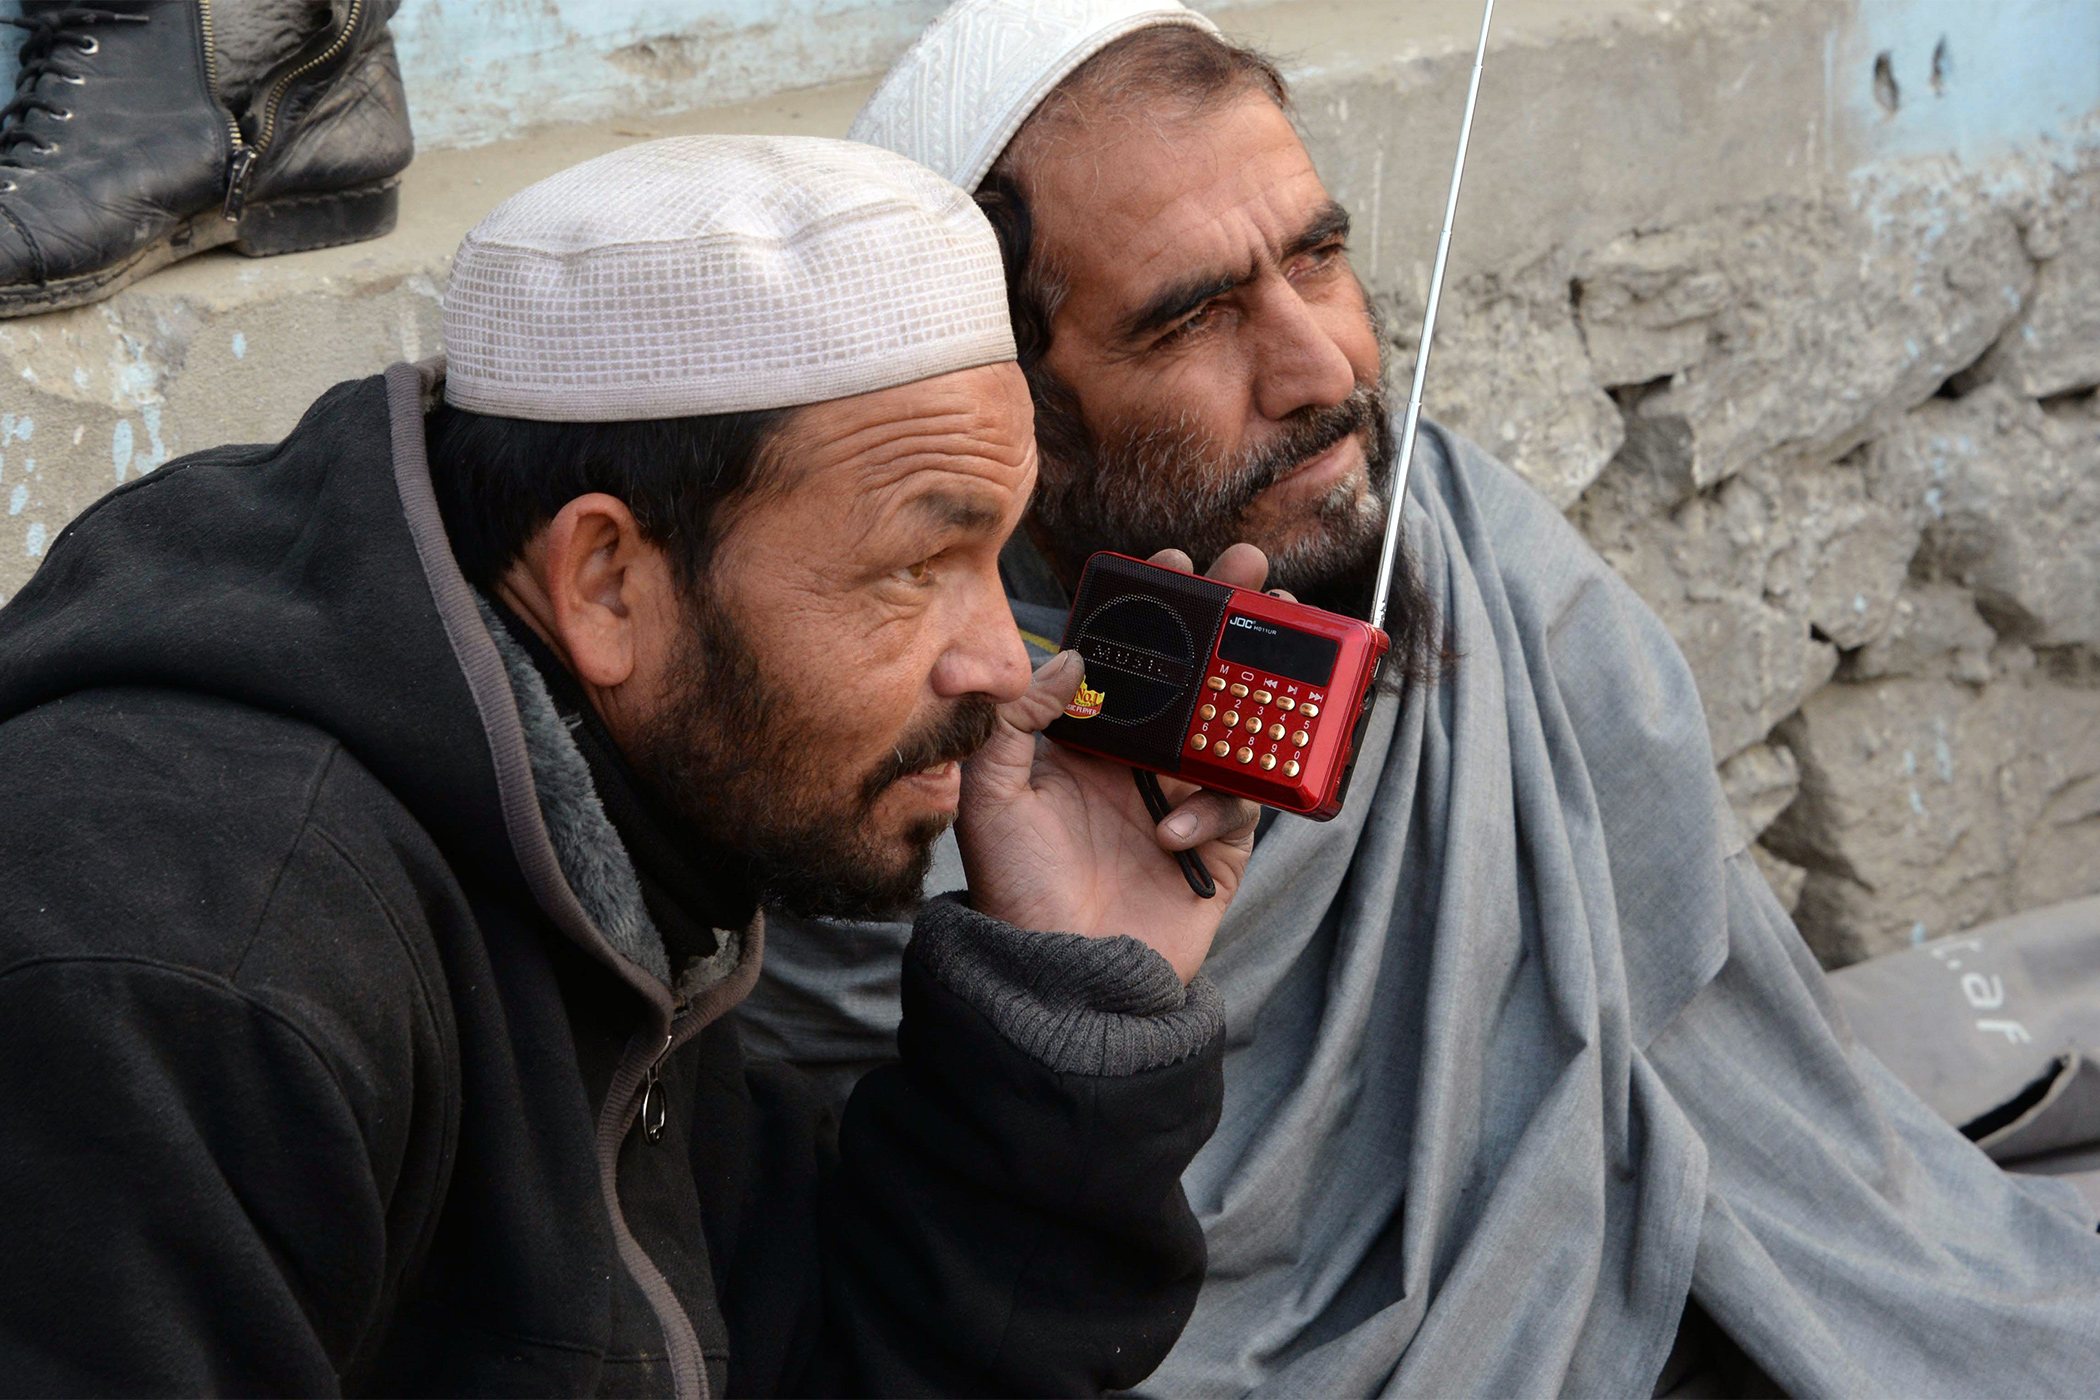 Two Afghan men in white traditional pakol hats listen to a portable radio